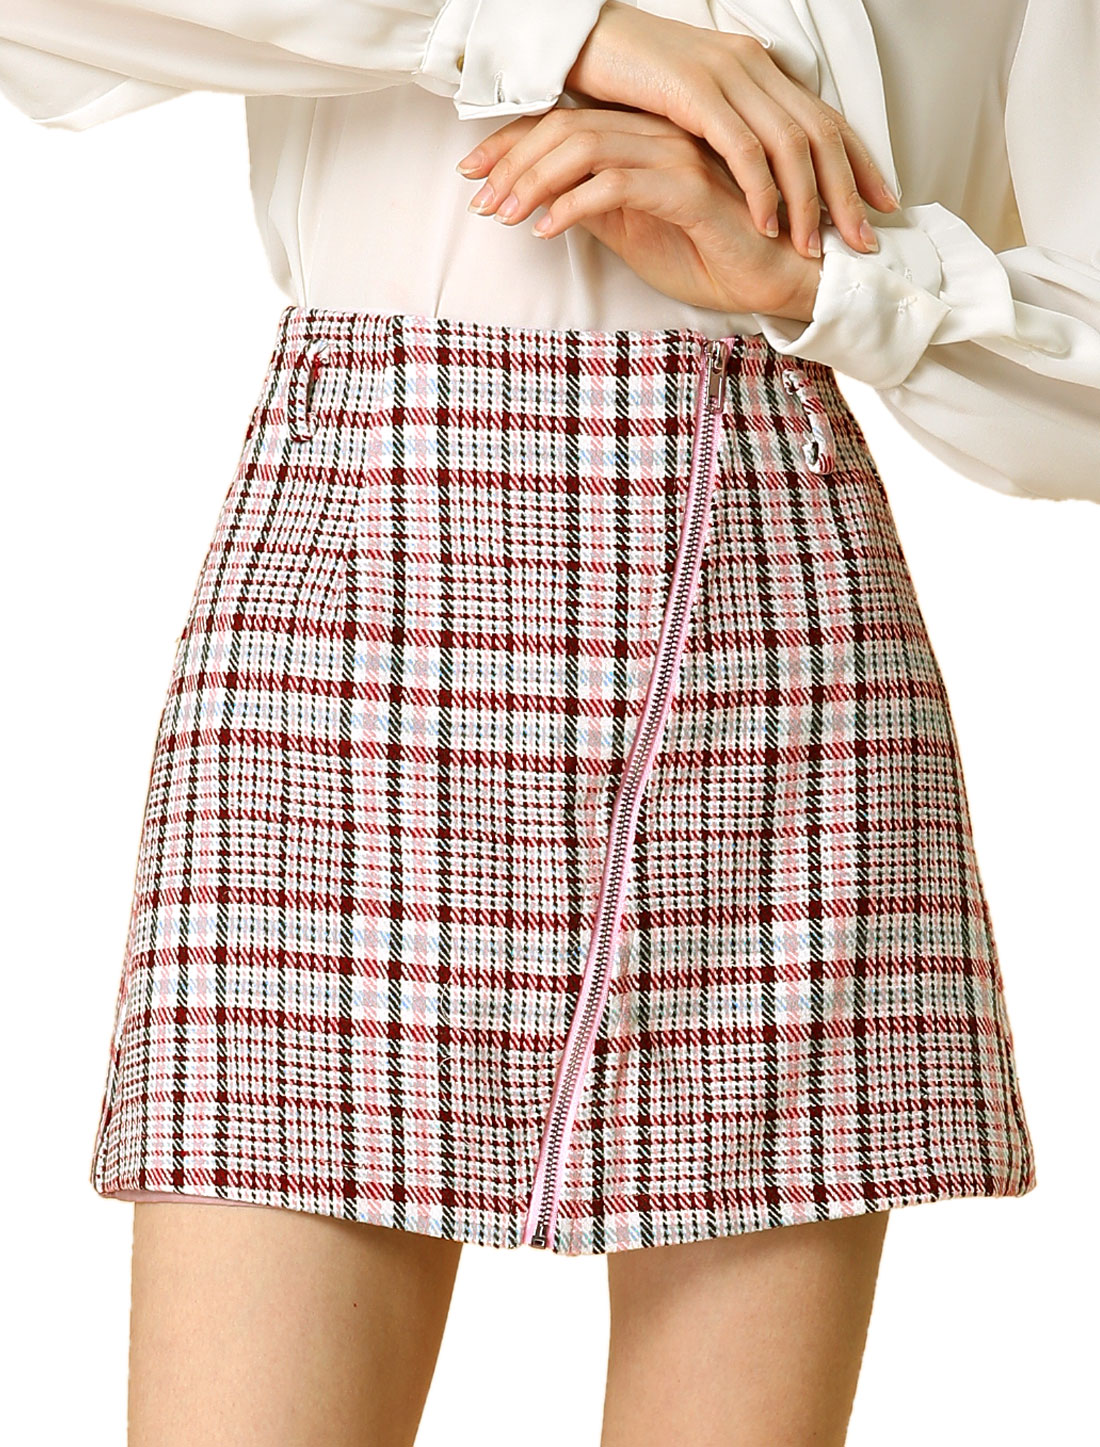 Allegra K Women's Zip High Waist Aline Plaids Skirt with Belt PINK XL (US 18)